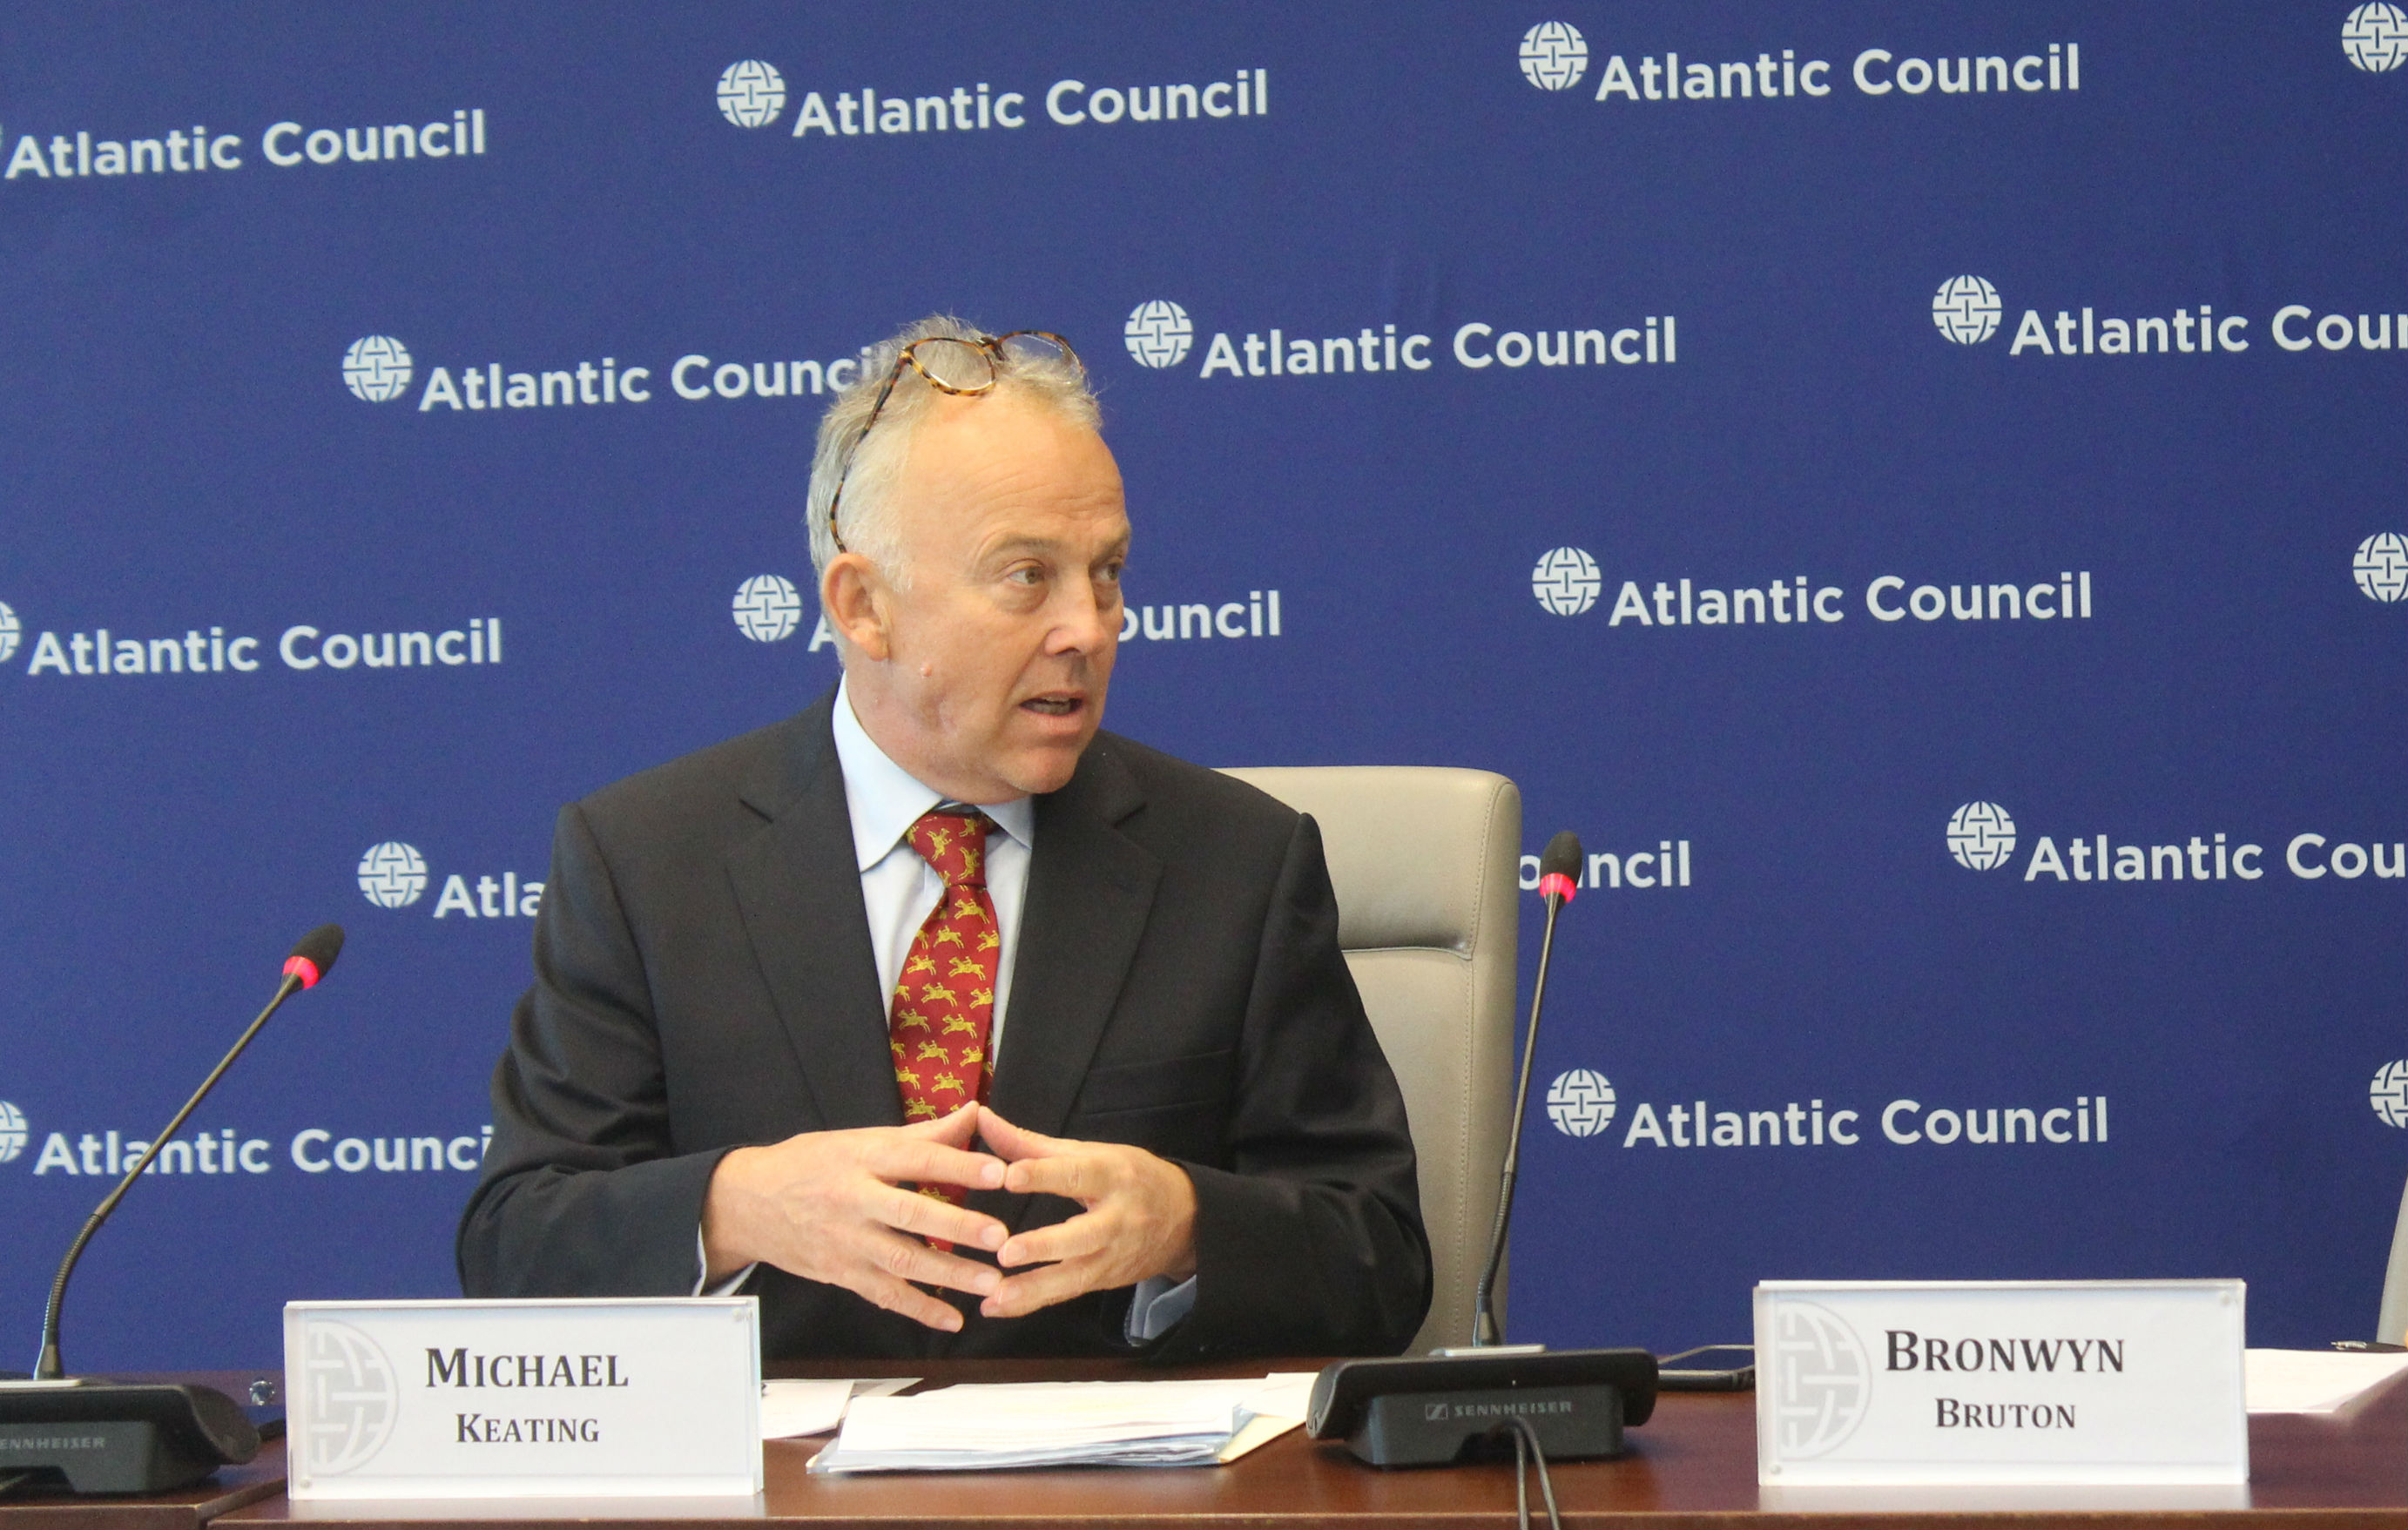 Roundtable with UN Special Representative for Somalia Michael Keating